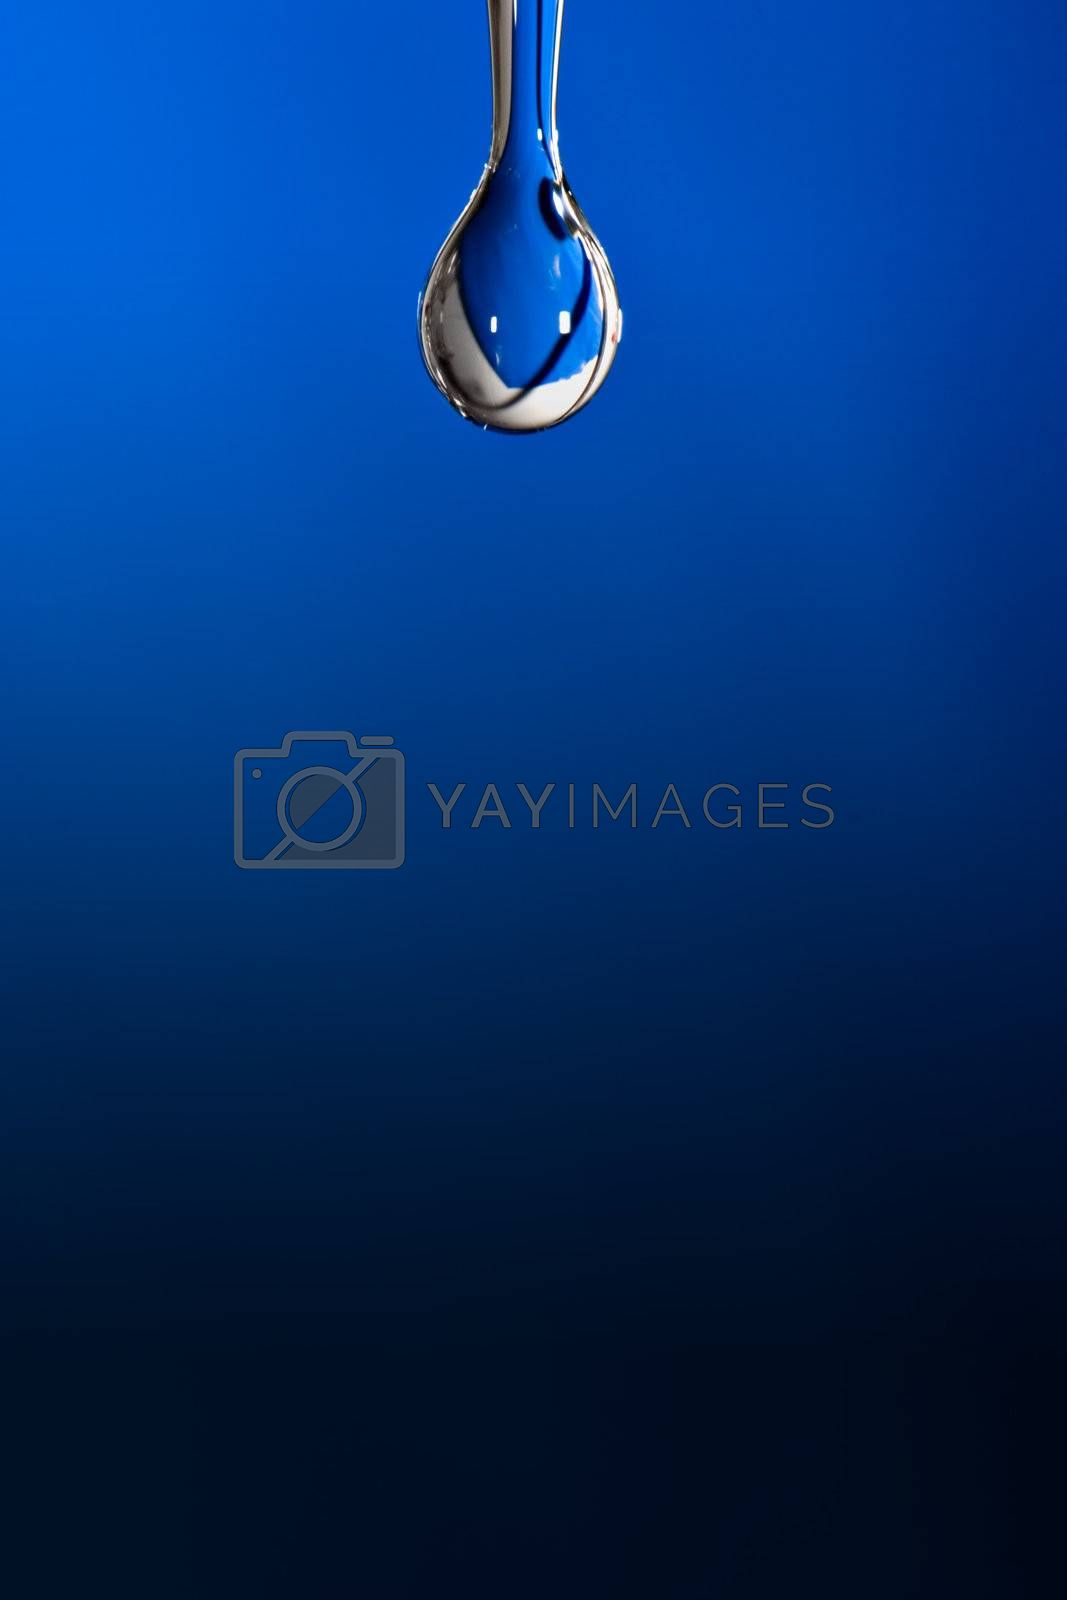 Royalty free image of Drop by ajn